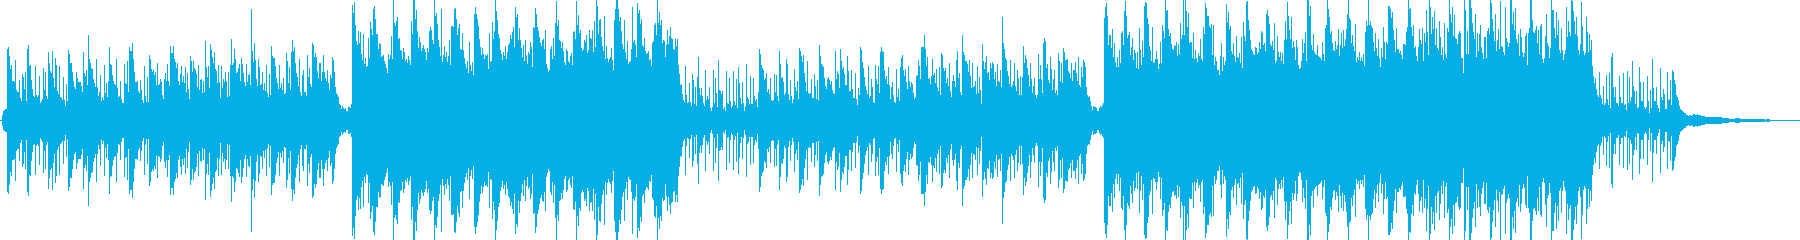 BGM for companies with a strong image's reproduced waveform